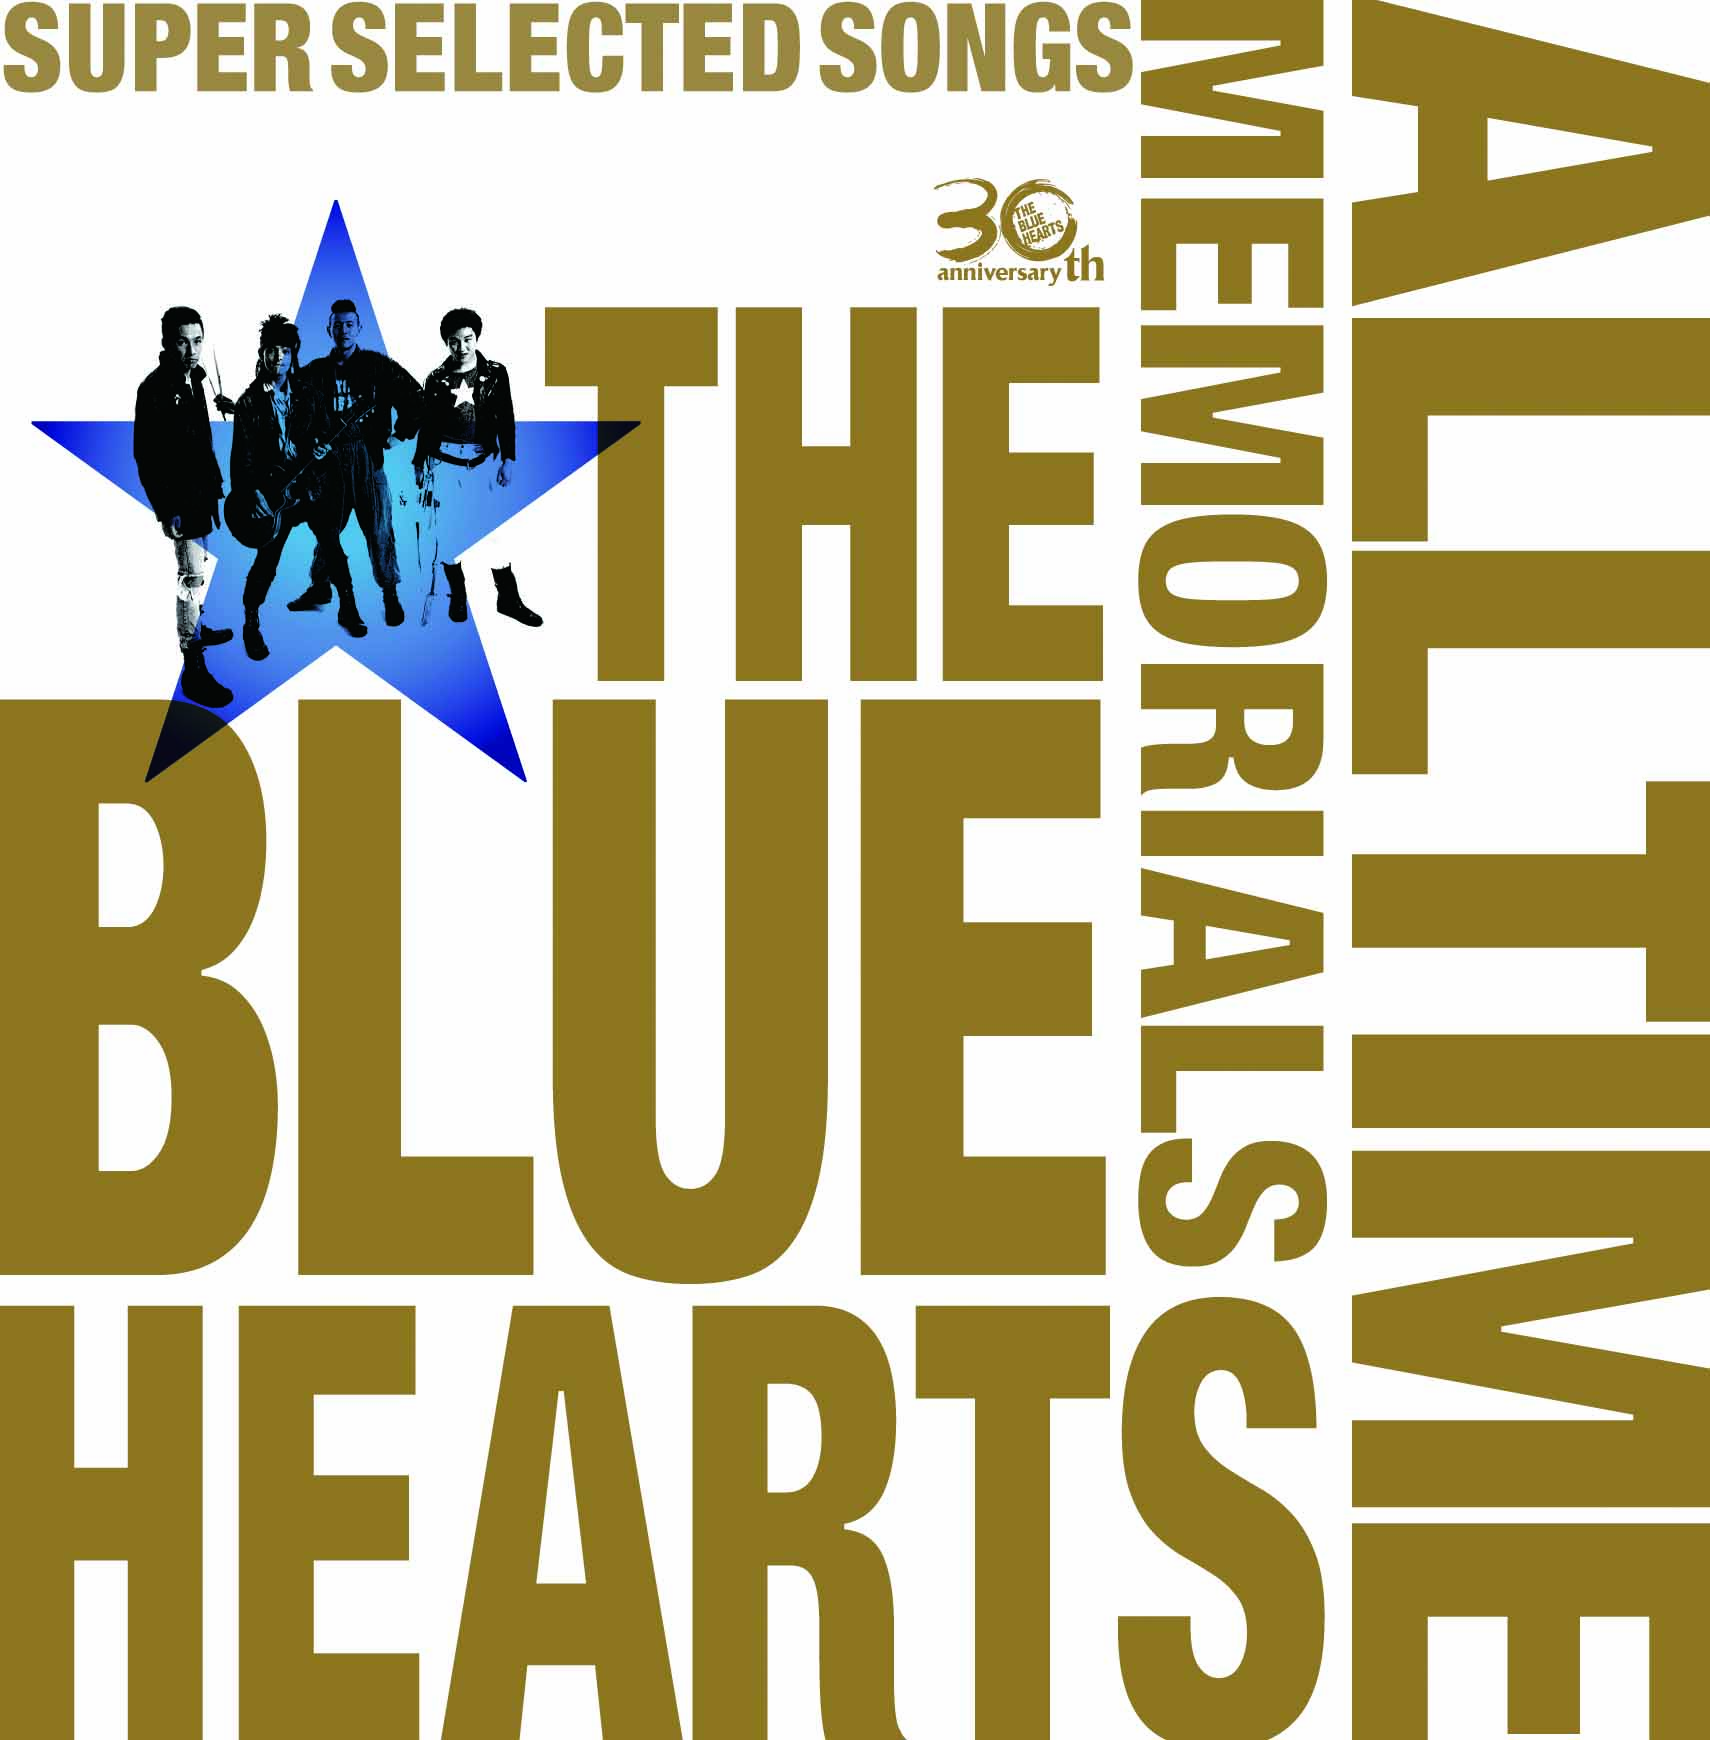 THE BLUE HEARTSの画像 p1_9